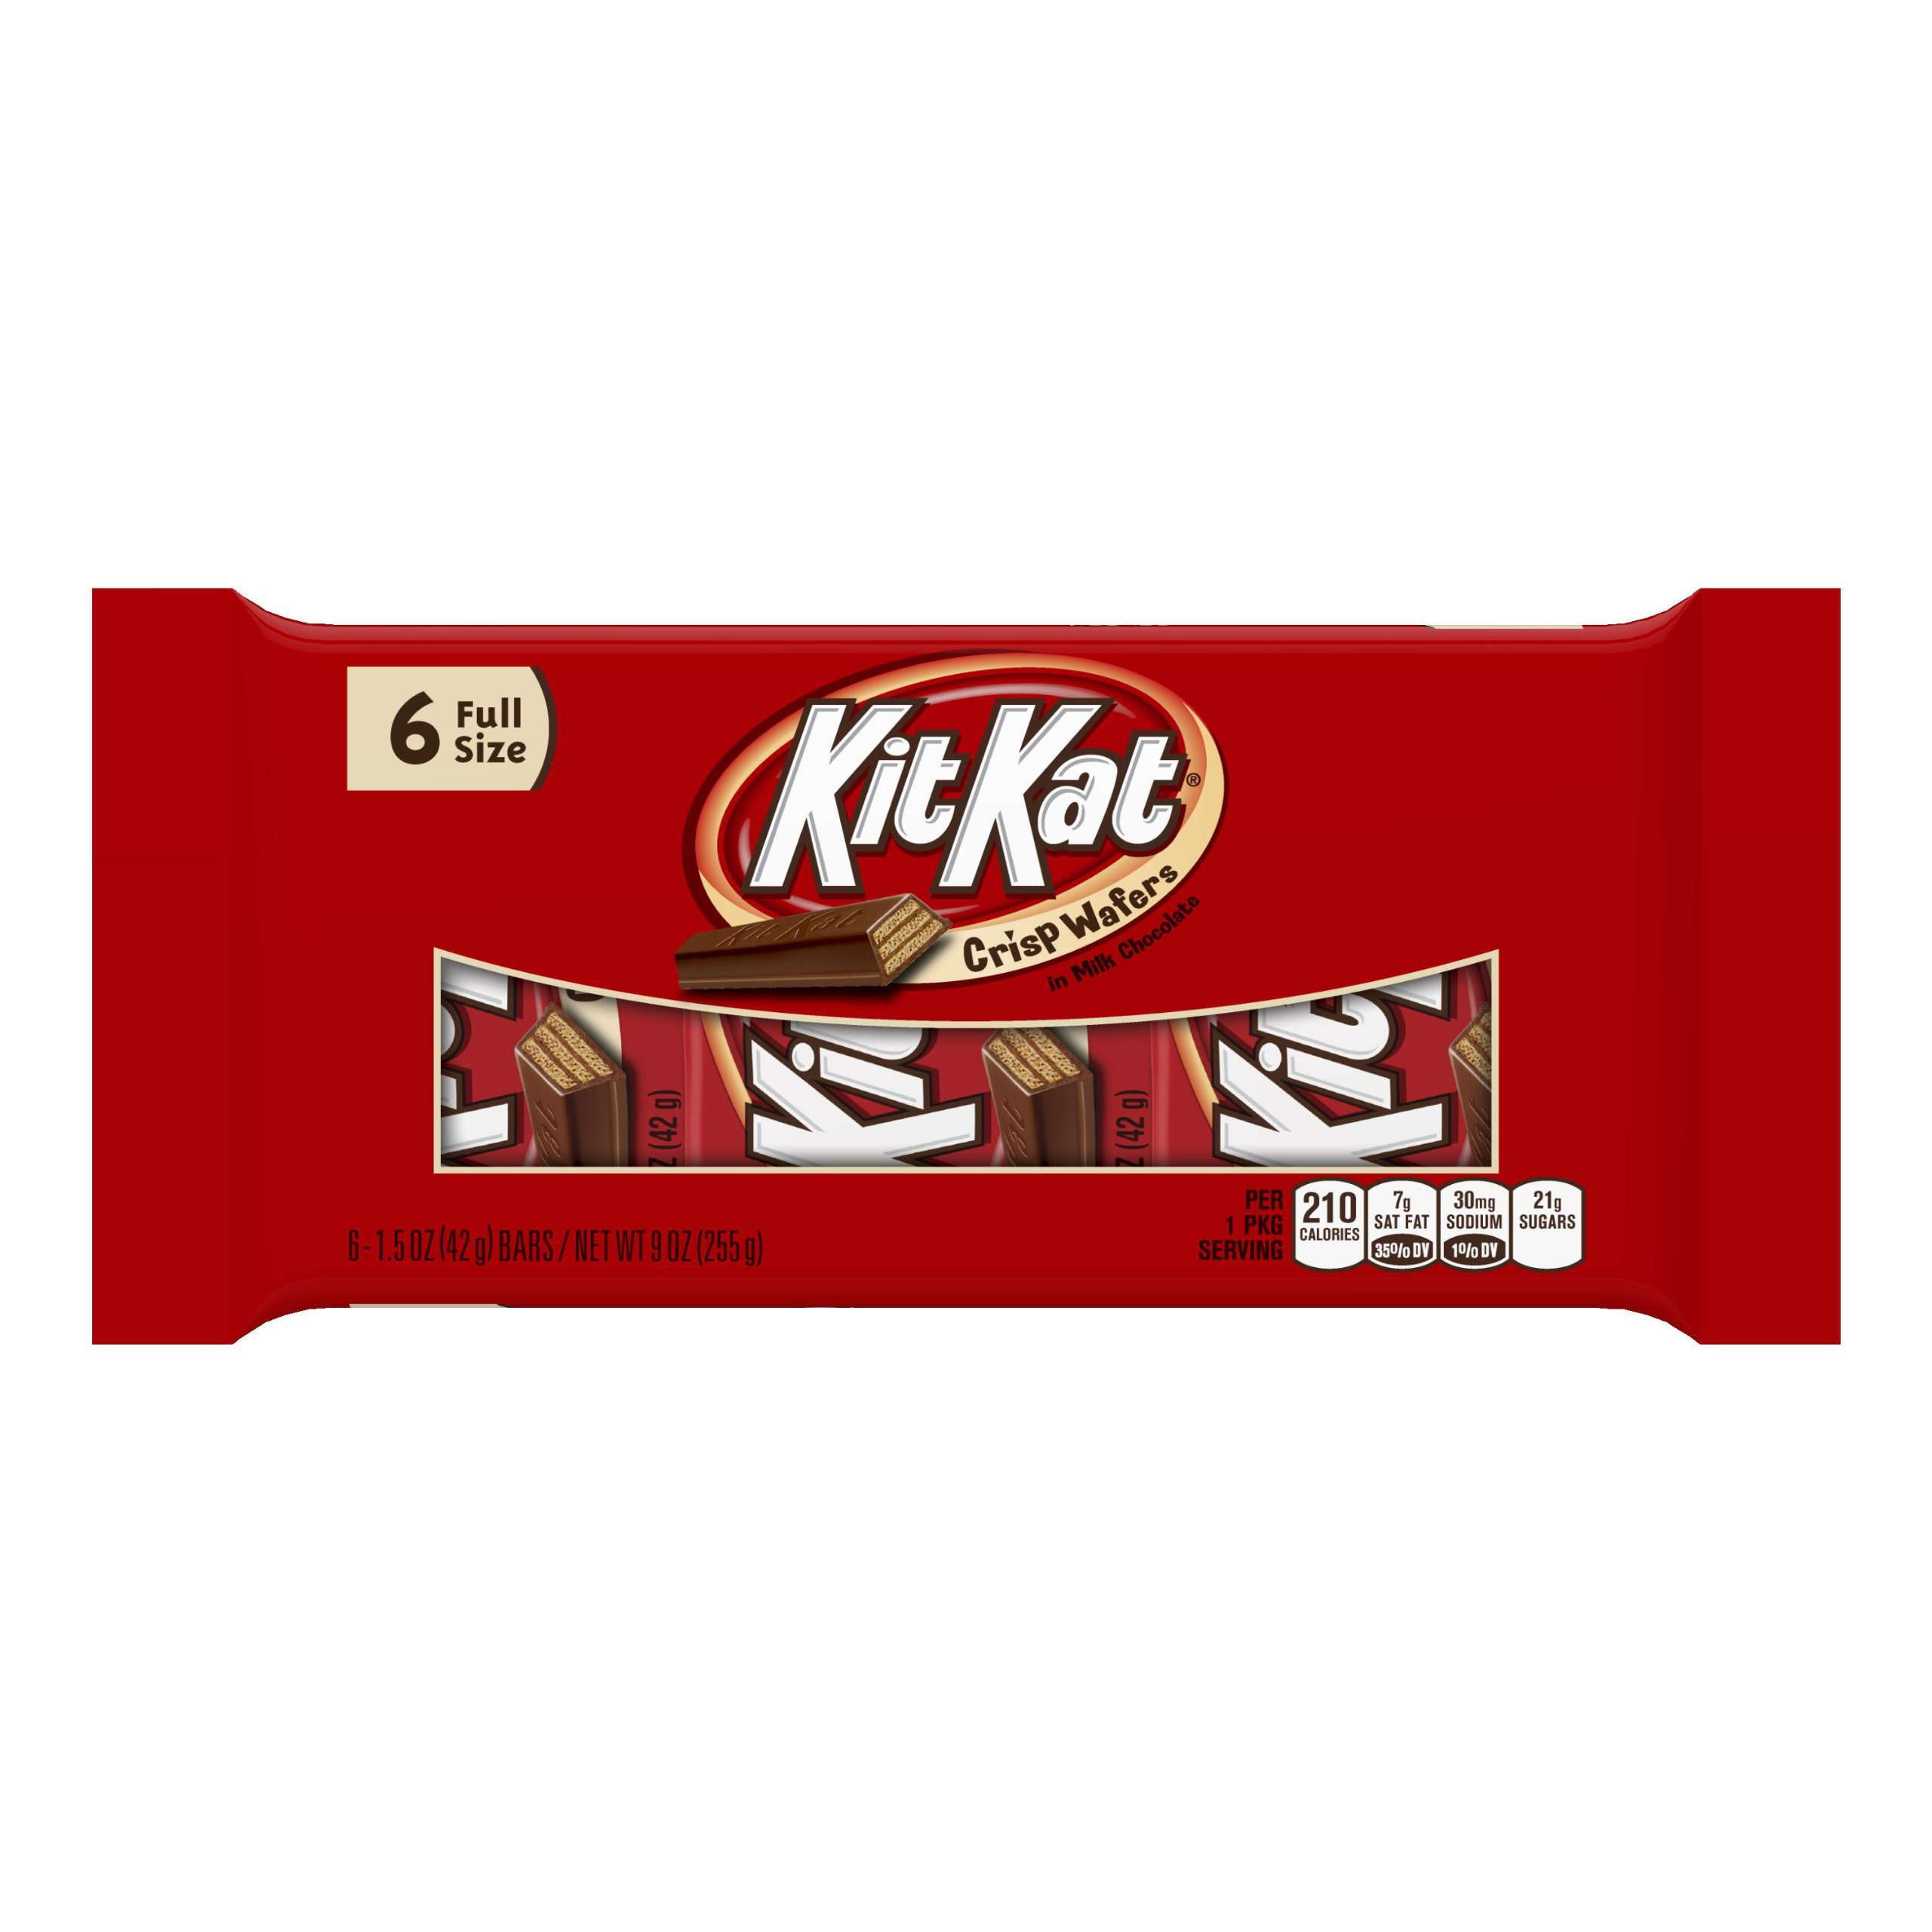 KIT KAT Chocolate Candy Bars, Halloween Candy, 6 Bars (Pack of 4)